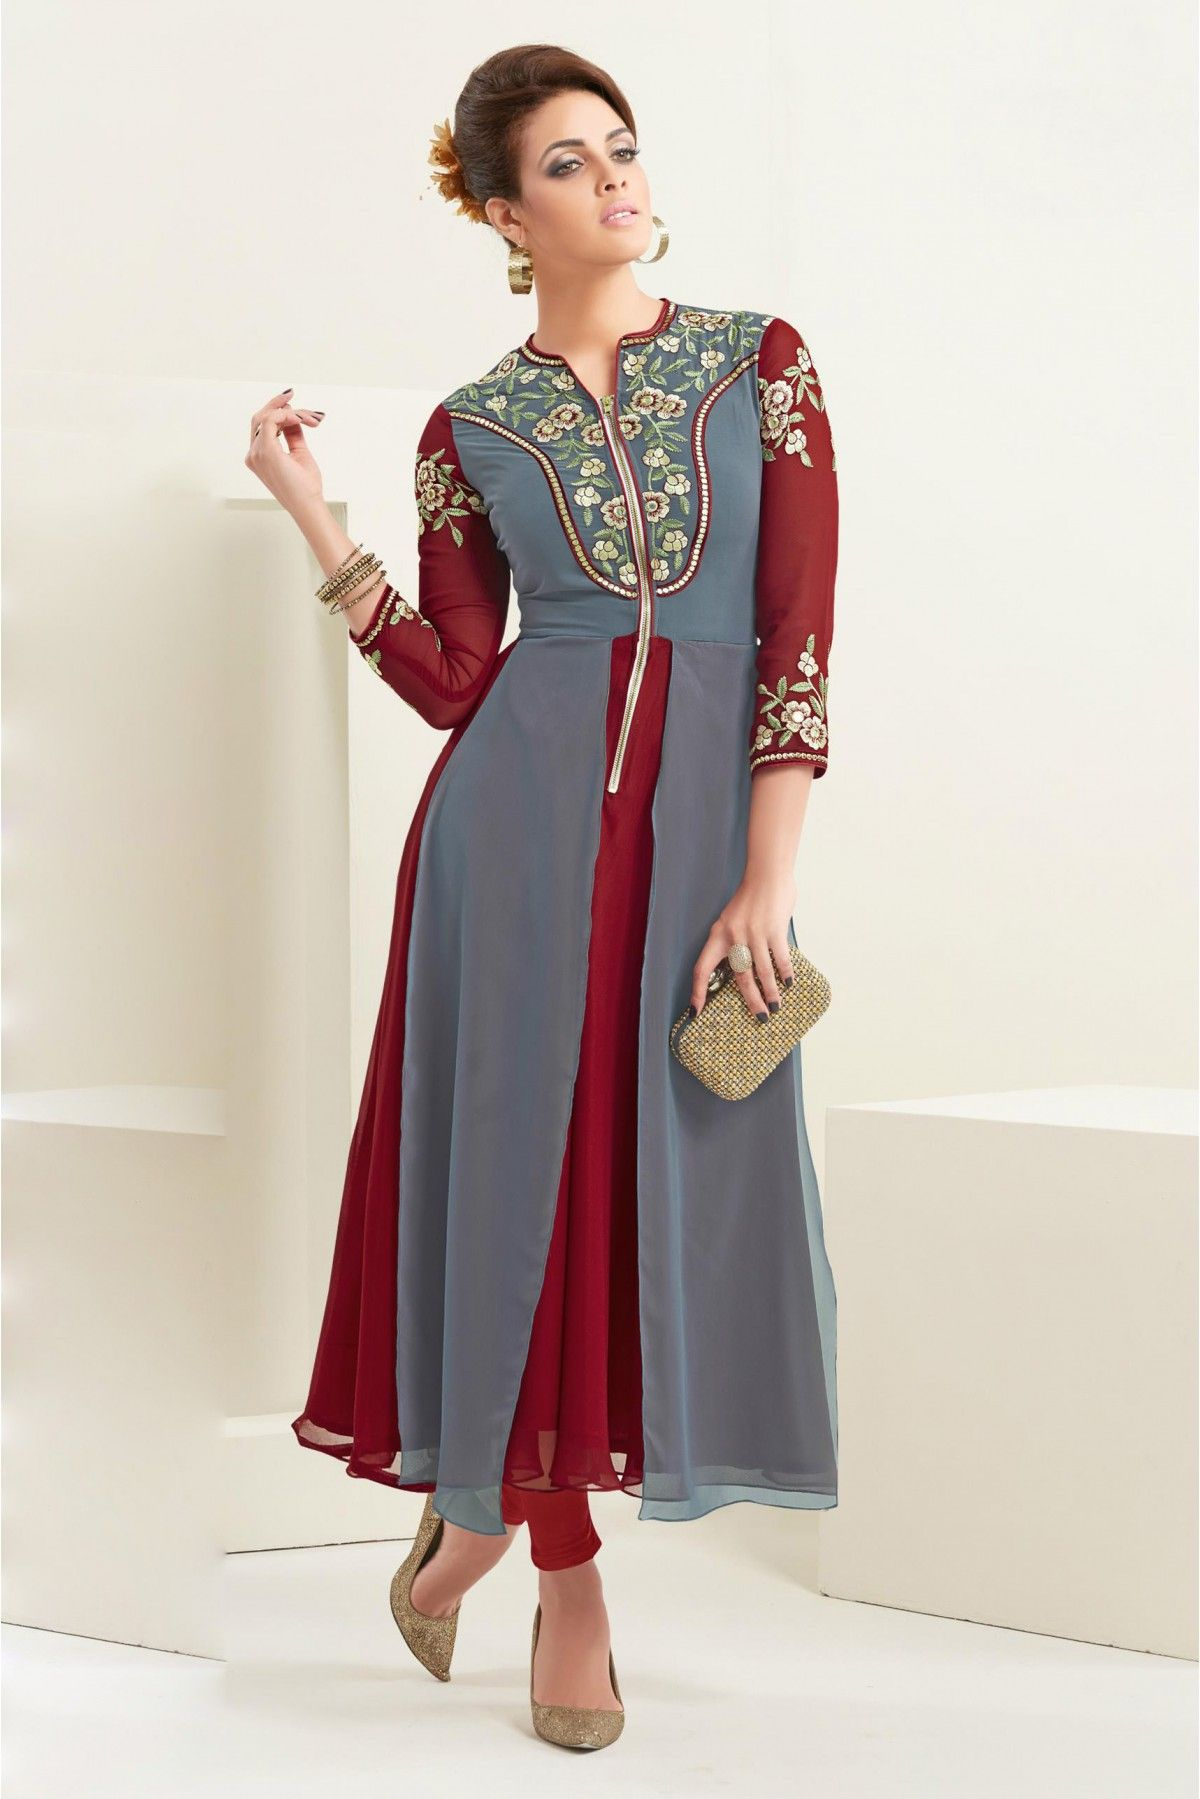 1f21eec96748 Buy online maroon and grey colored faux georgette designer suit. This  beautiful designer suit is enriched with embroidered. Shop online indian  attire at ...